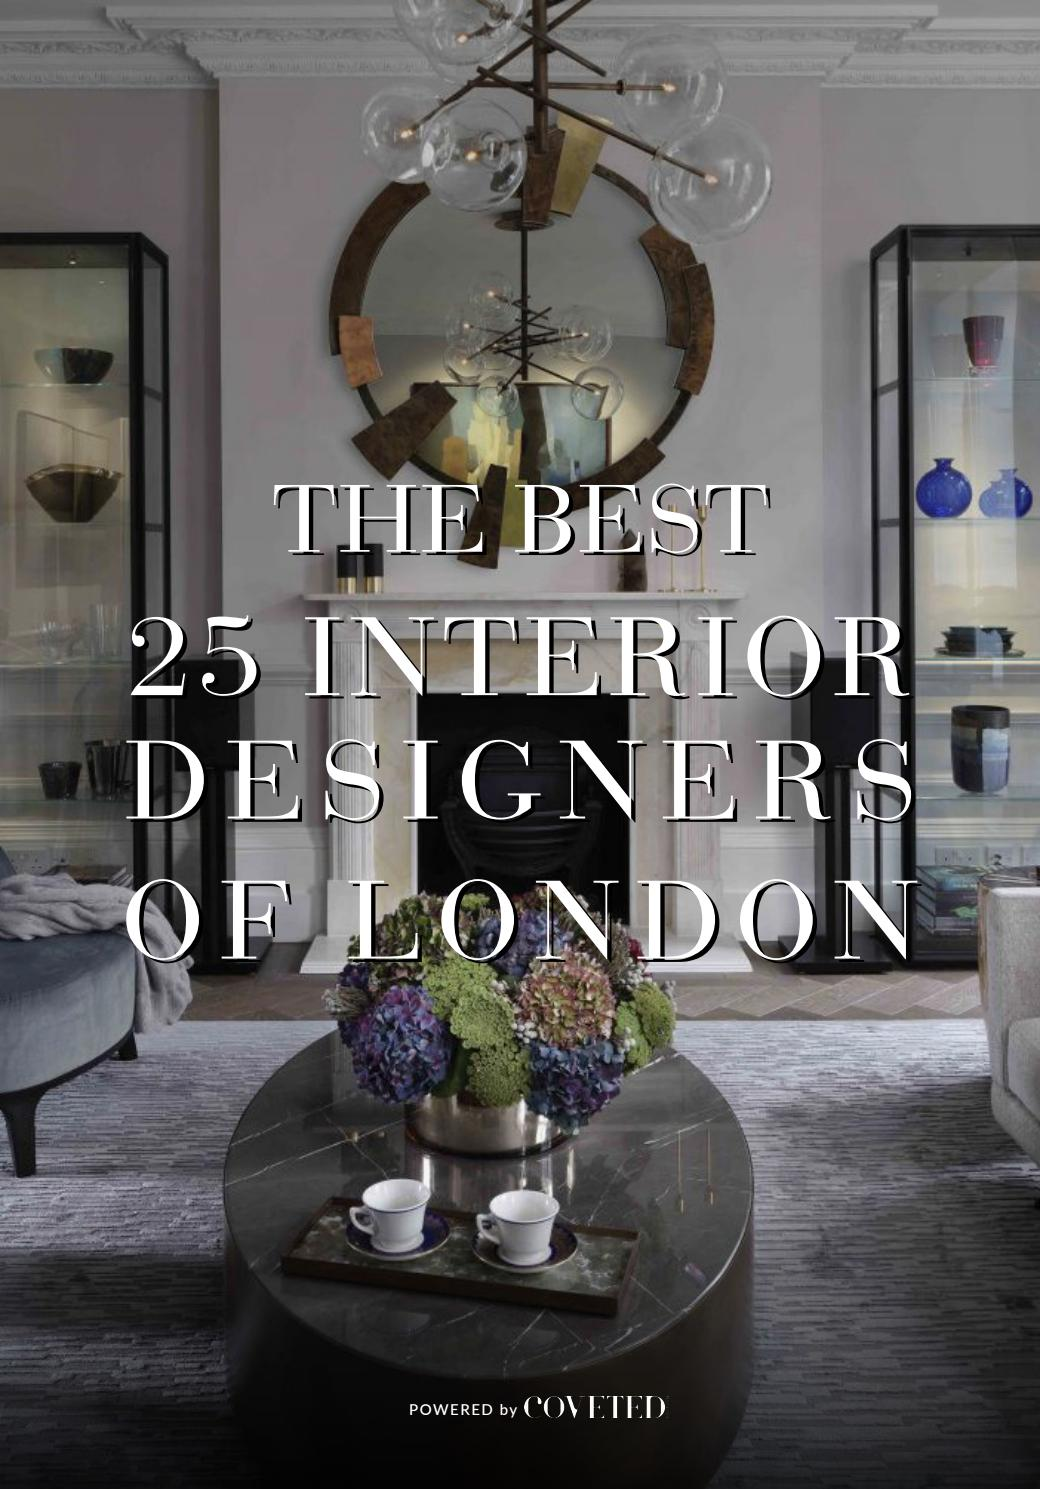 The Best 25 Interior Designers Of London By Trend Design Book Issuu